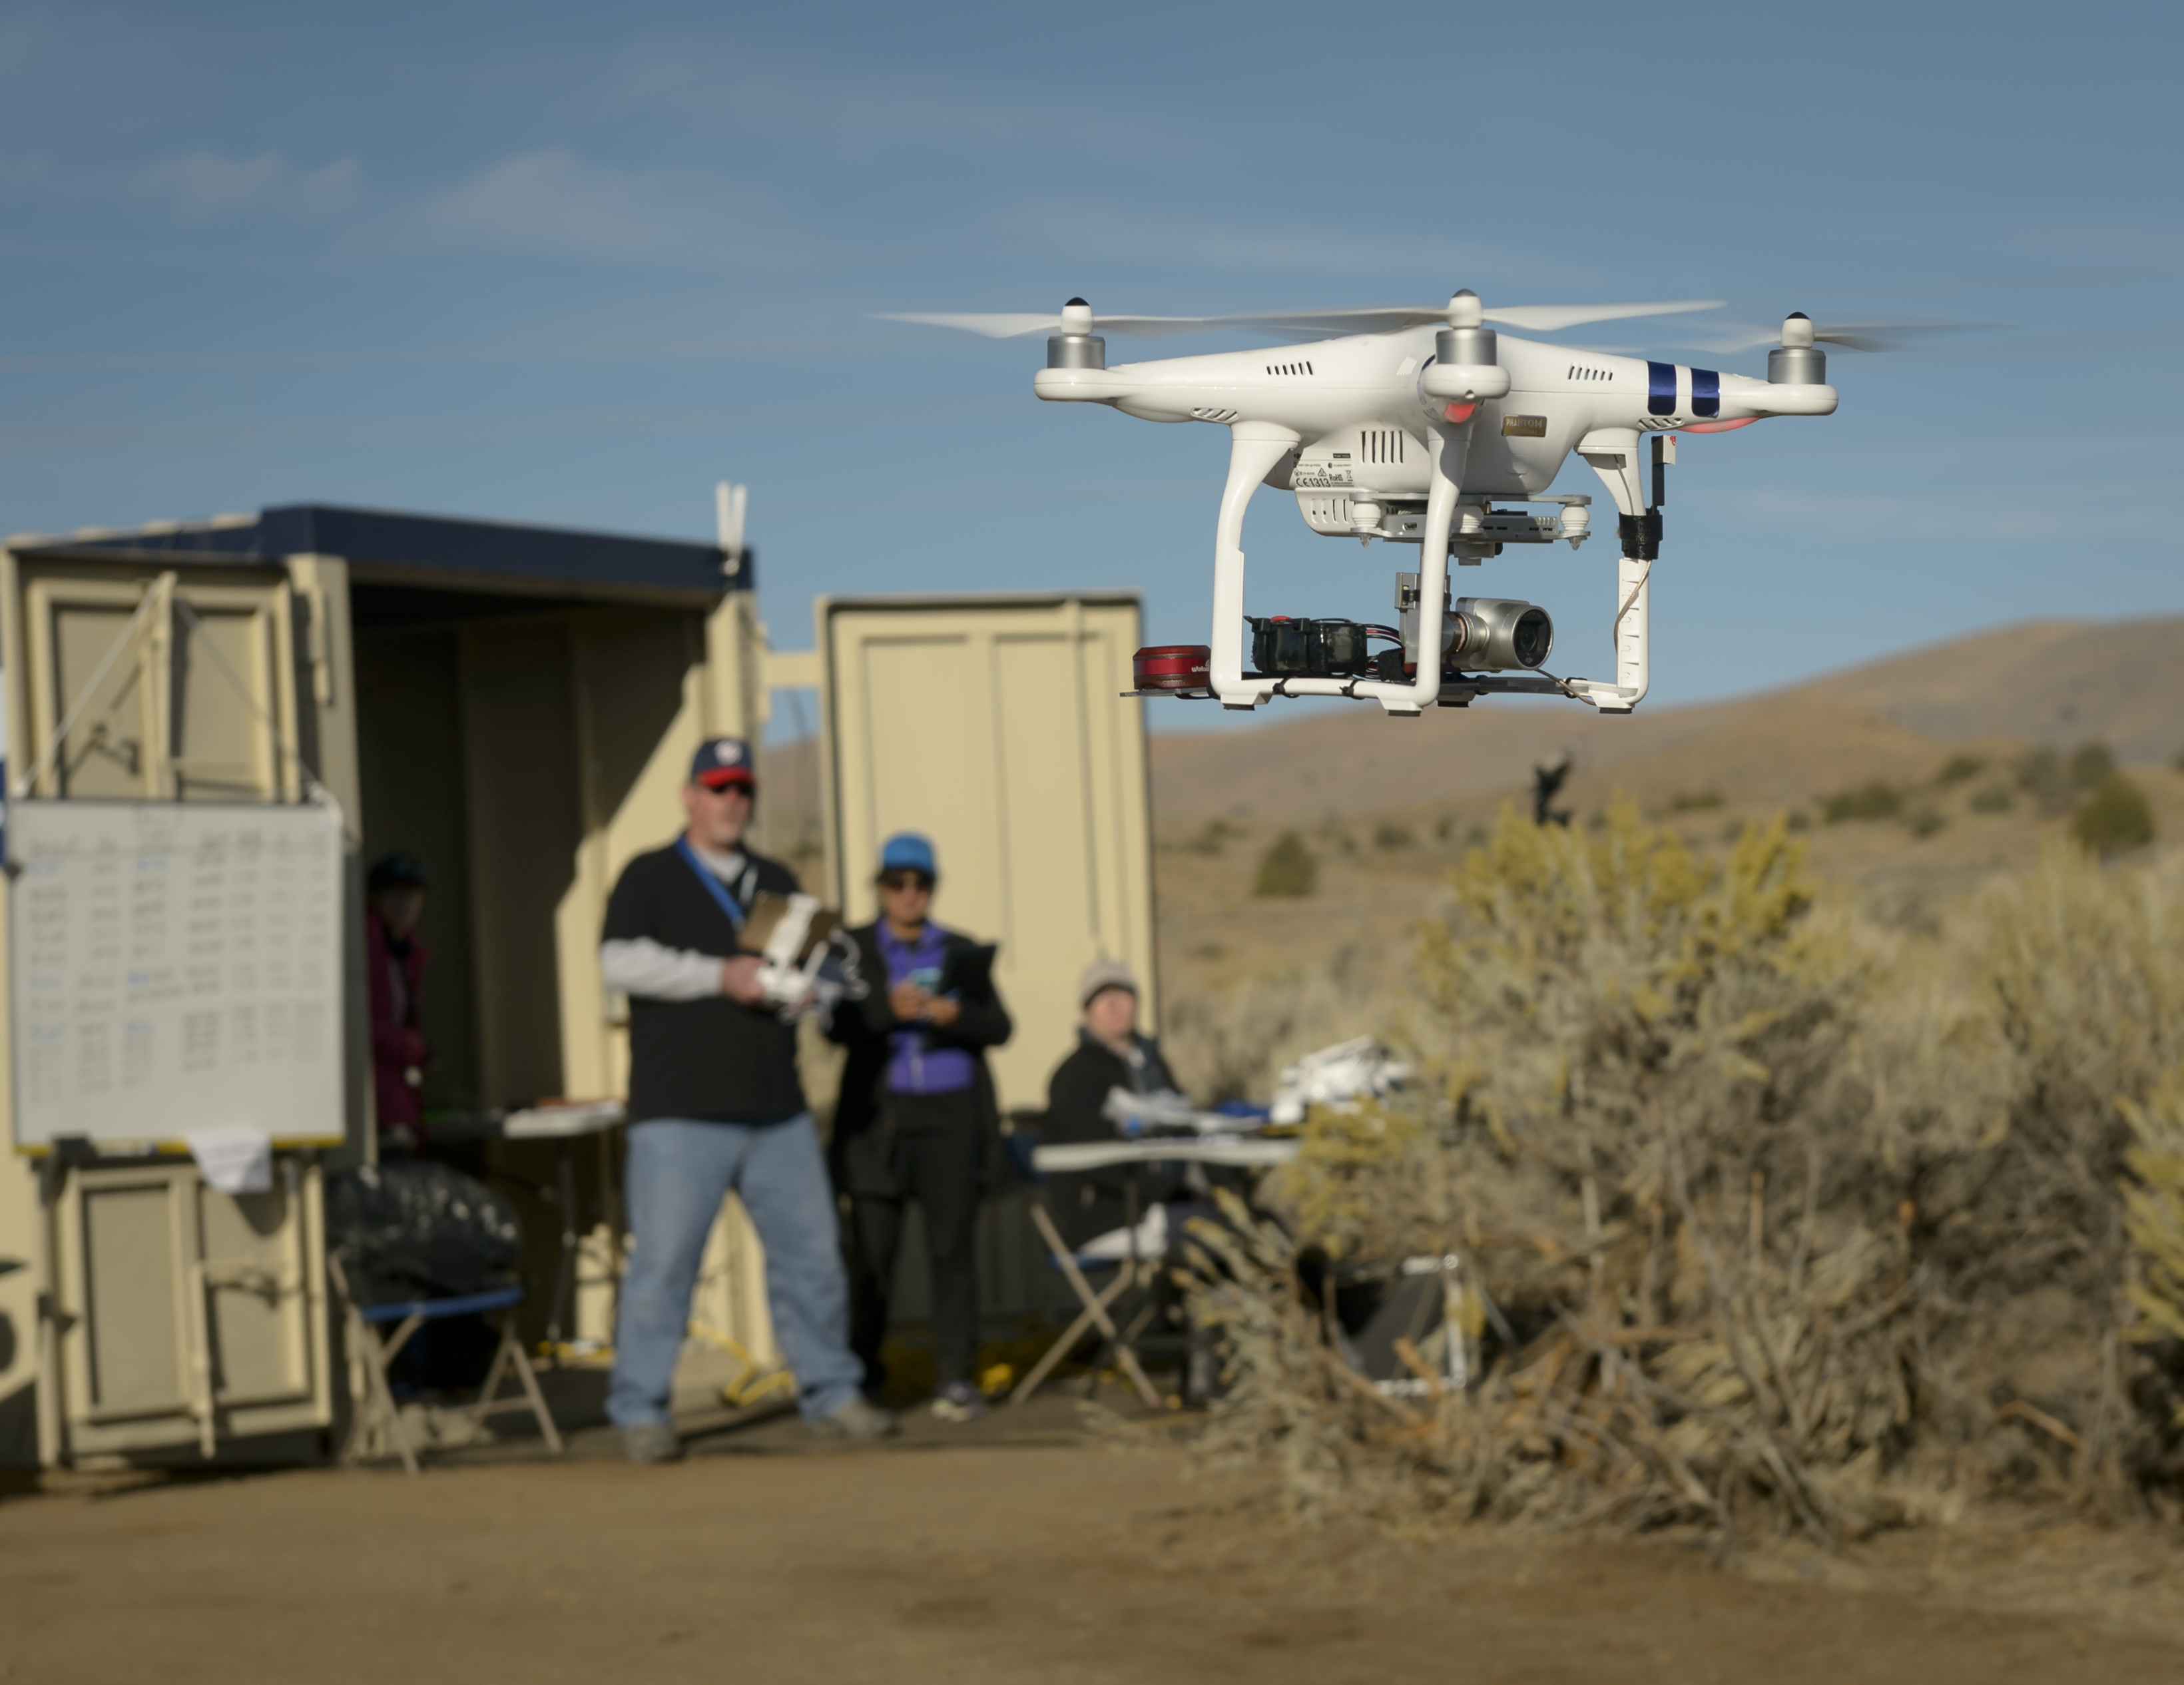 NASA is flying drones at a Nevada airport to test air traffic control systems